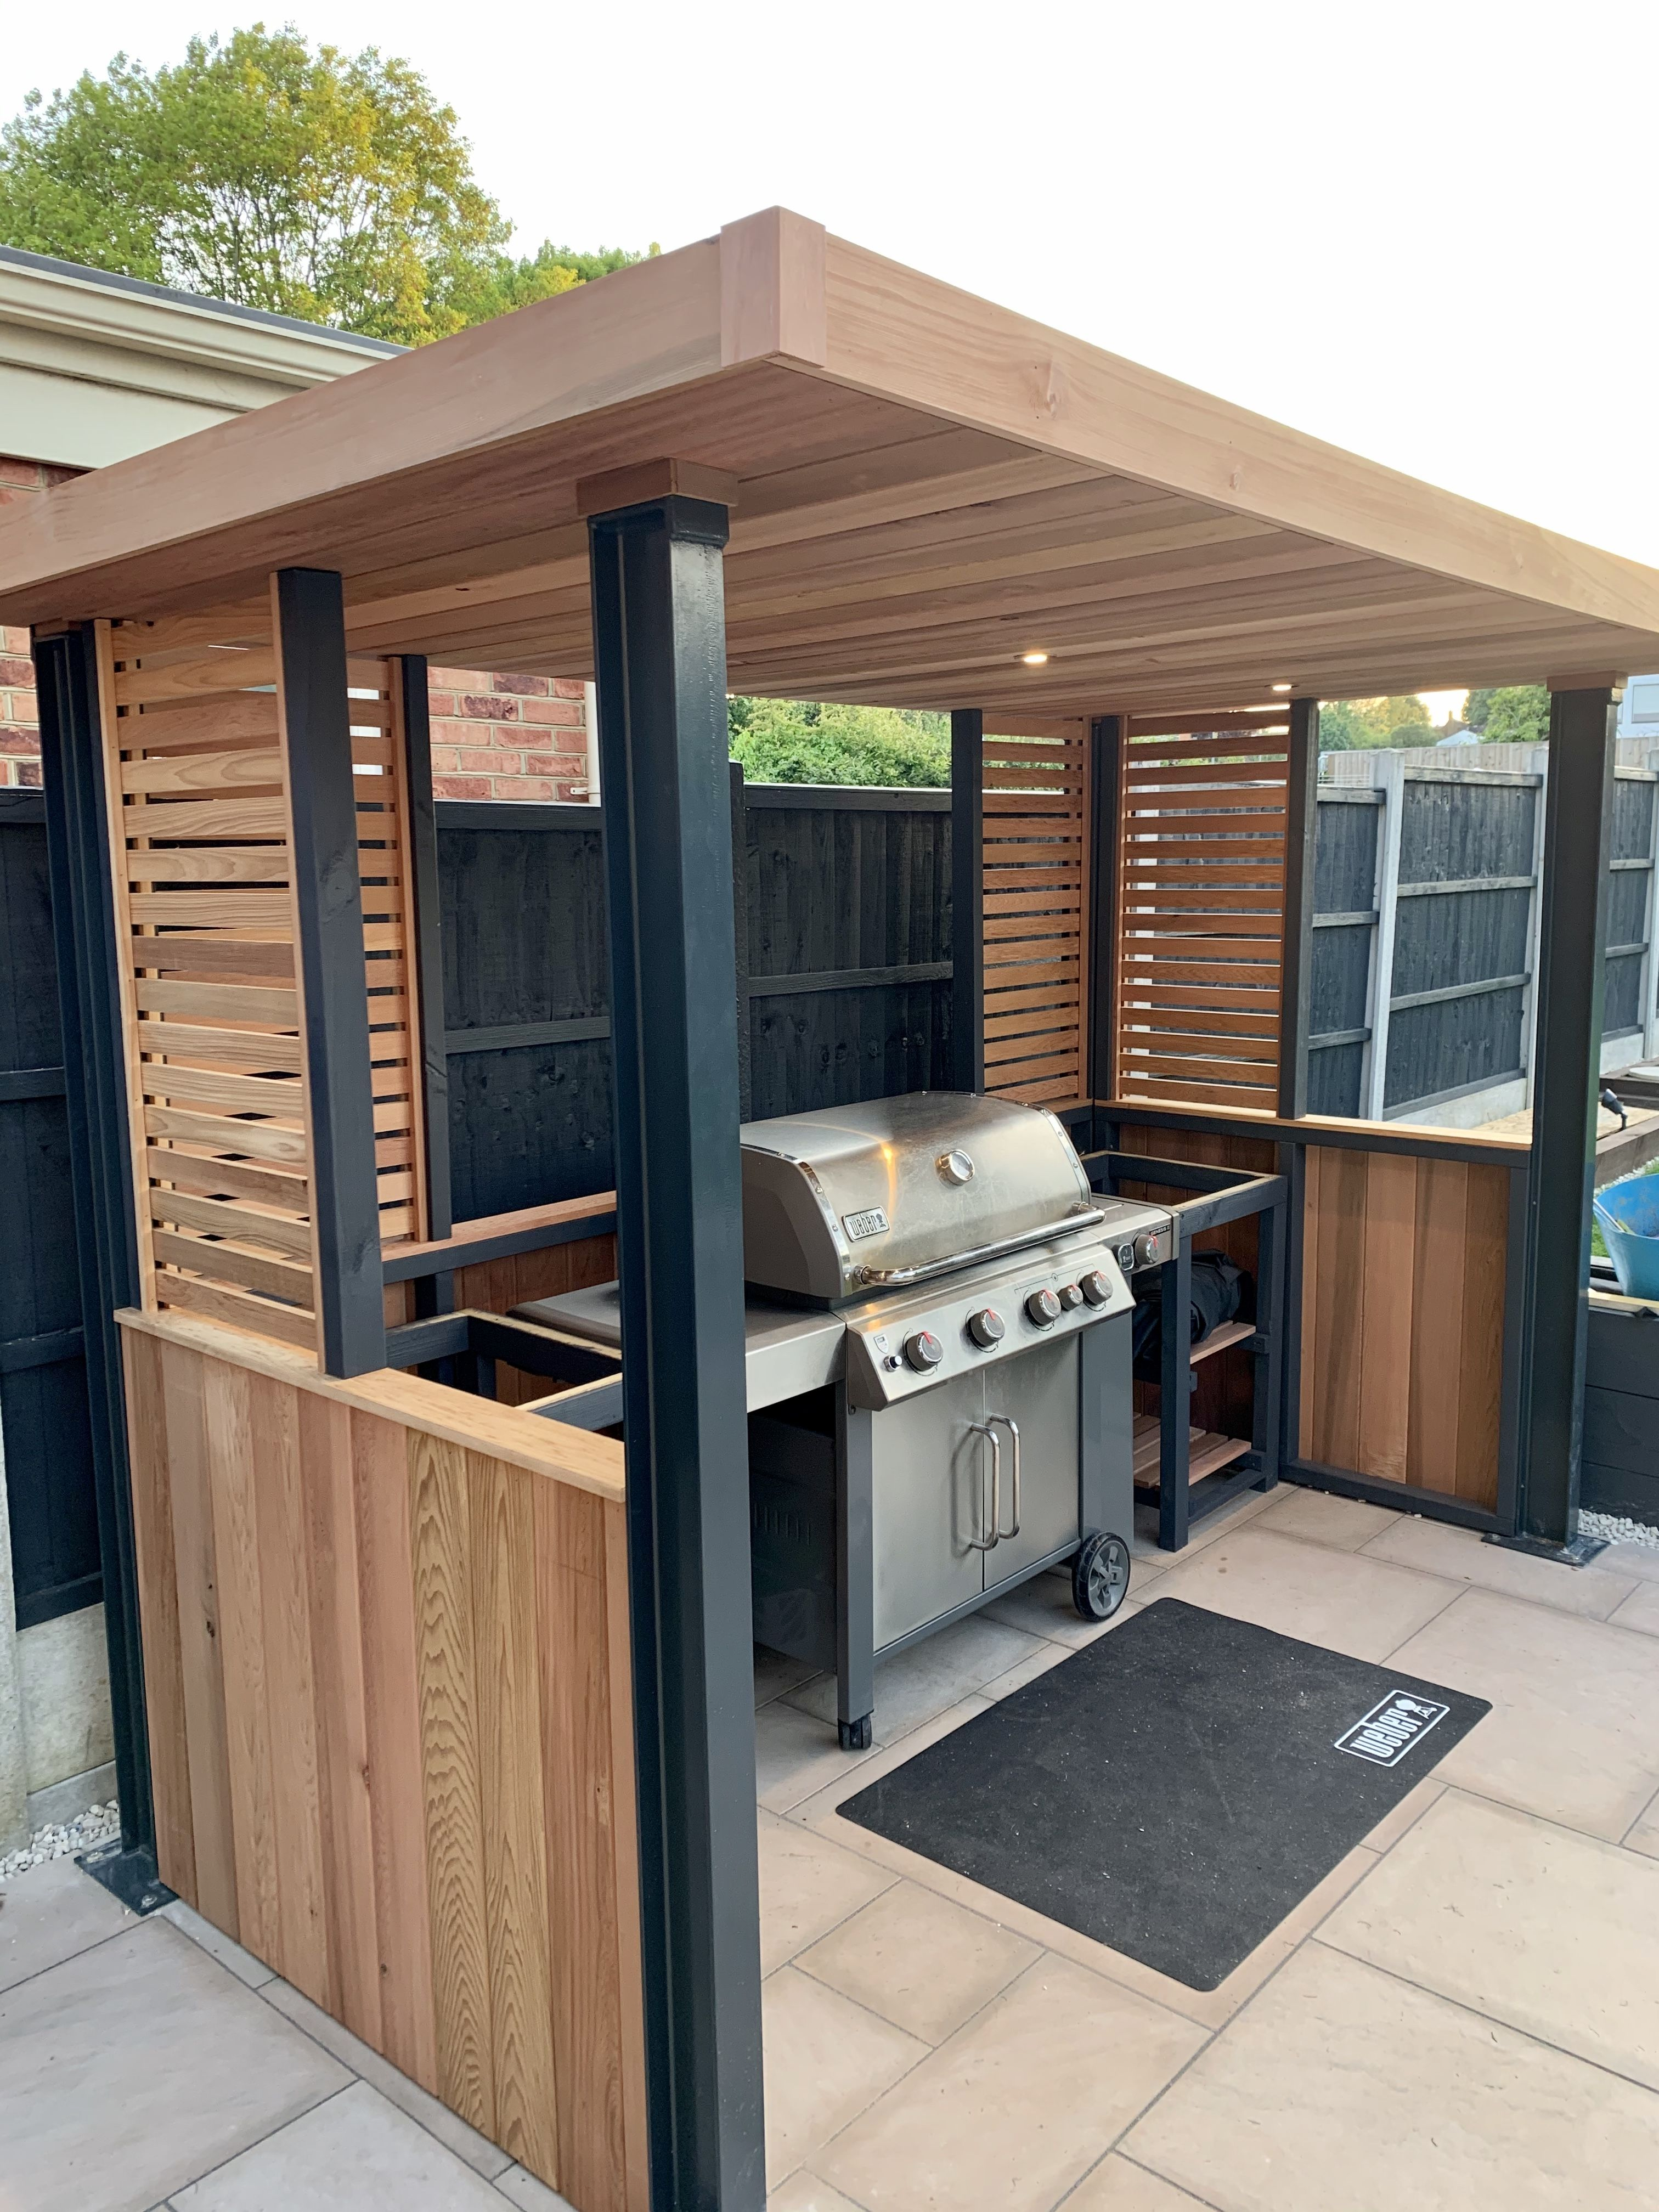 Bbq Shelter From Solace Garden Rooms On Facebook In 2020 Outdoor Barbeque Outdoor Bbq Kitchen Backyard Patio Designs